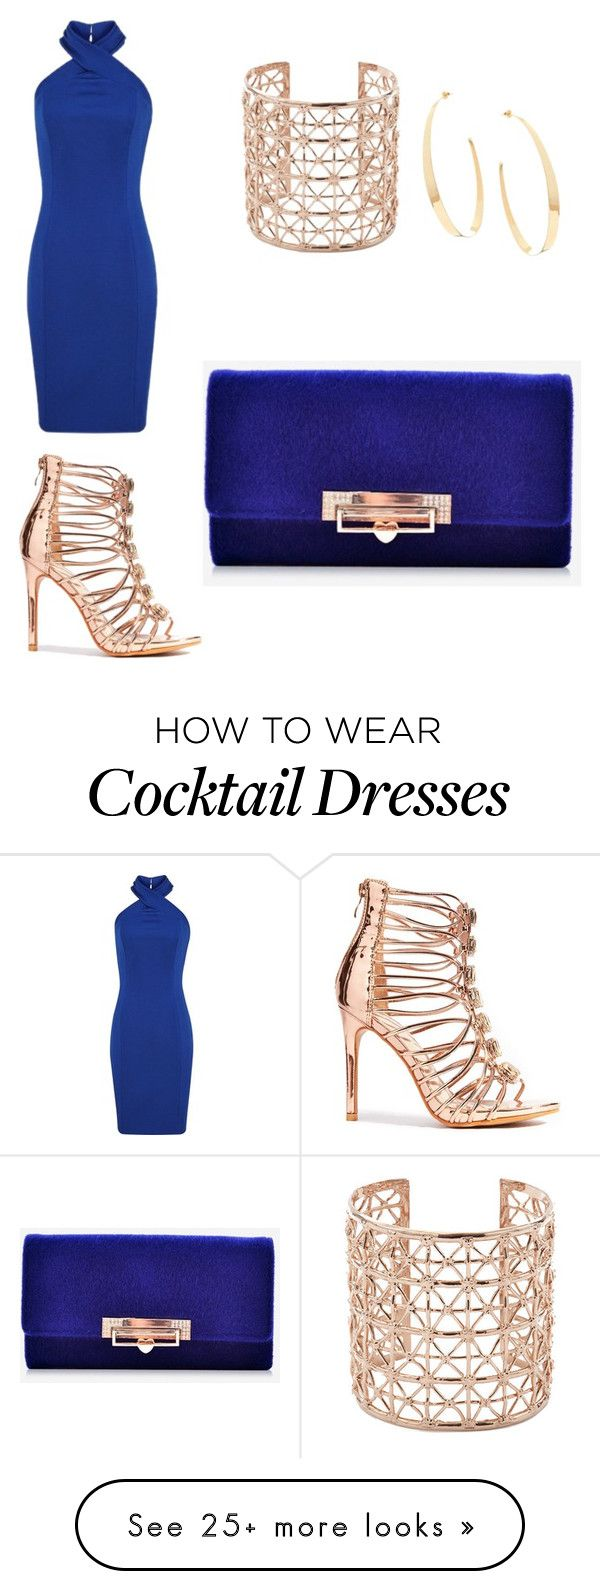 """Feeling Sophisticated"" by ashlynn72 on Polyvore featuring Co.Ro and Lana"